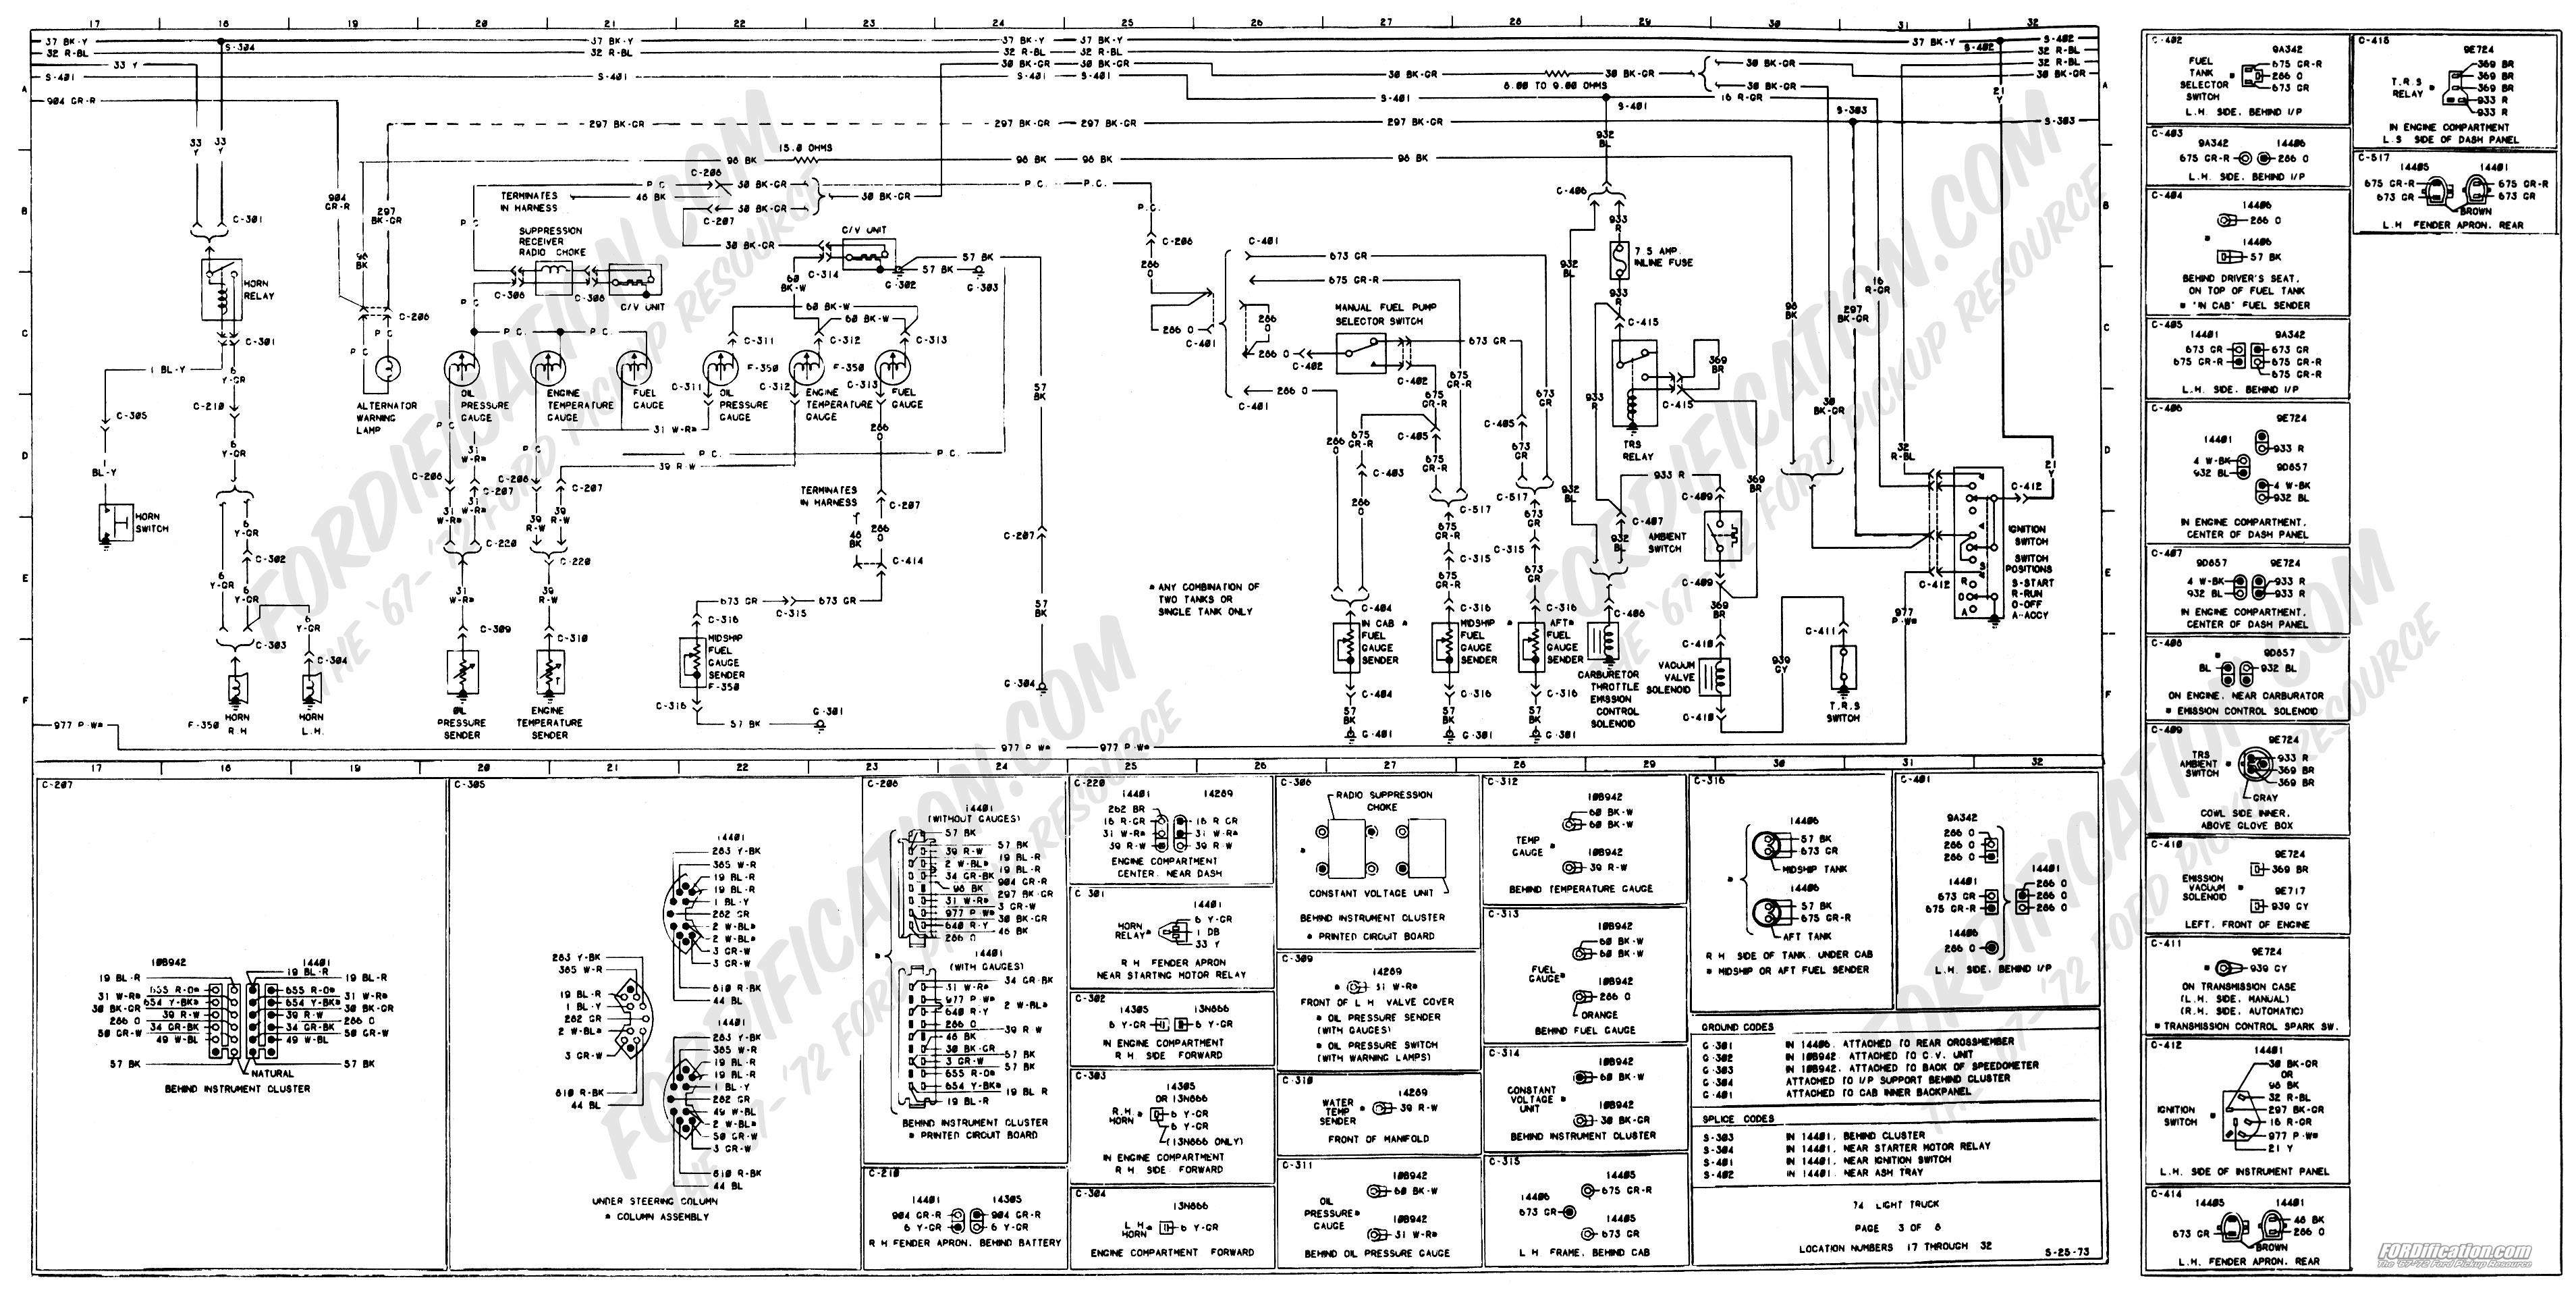 1973 Mercedes 450sl Wiring Diagram | Wiring Liry on air conditioner wiring connection, air conditioner schematics, air conditioner test equipment, air switch wiring diagram, air conditioner wiring requirements, hvac systems diagrams, air conditioner contactor diagram, air conditioner not cooling, hdmi tv cable connections diagrams, air conditioner air flow diagram, air conditioner compressor, air conditioner wires, air conditioner relay diagram, basic hvac ladder diagrams, ceiling fans diagrams, air conditioner electrical, air handler wiring diagram, air compressor wiring diagram, air conditioning, rooftop hvac unit diagrams,